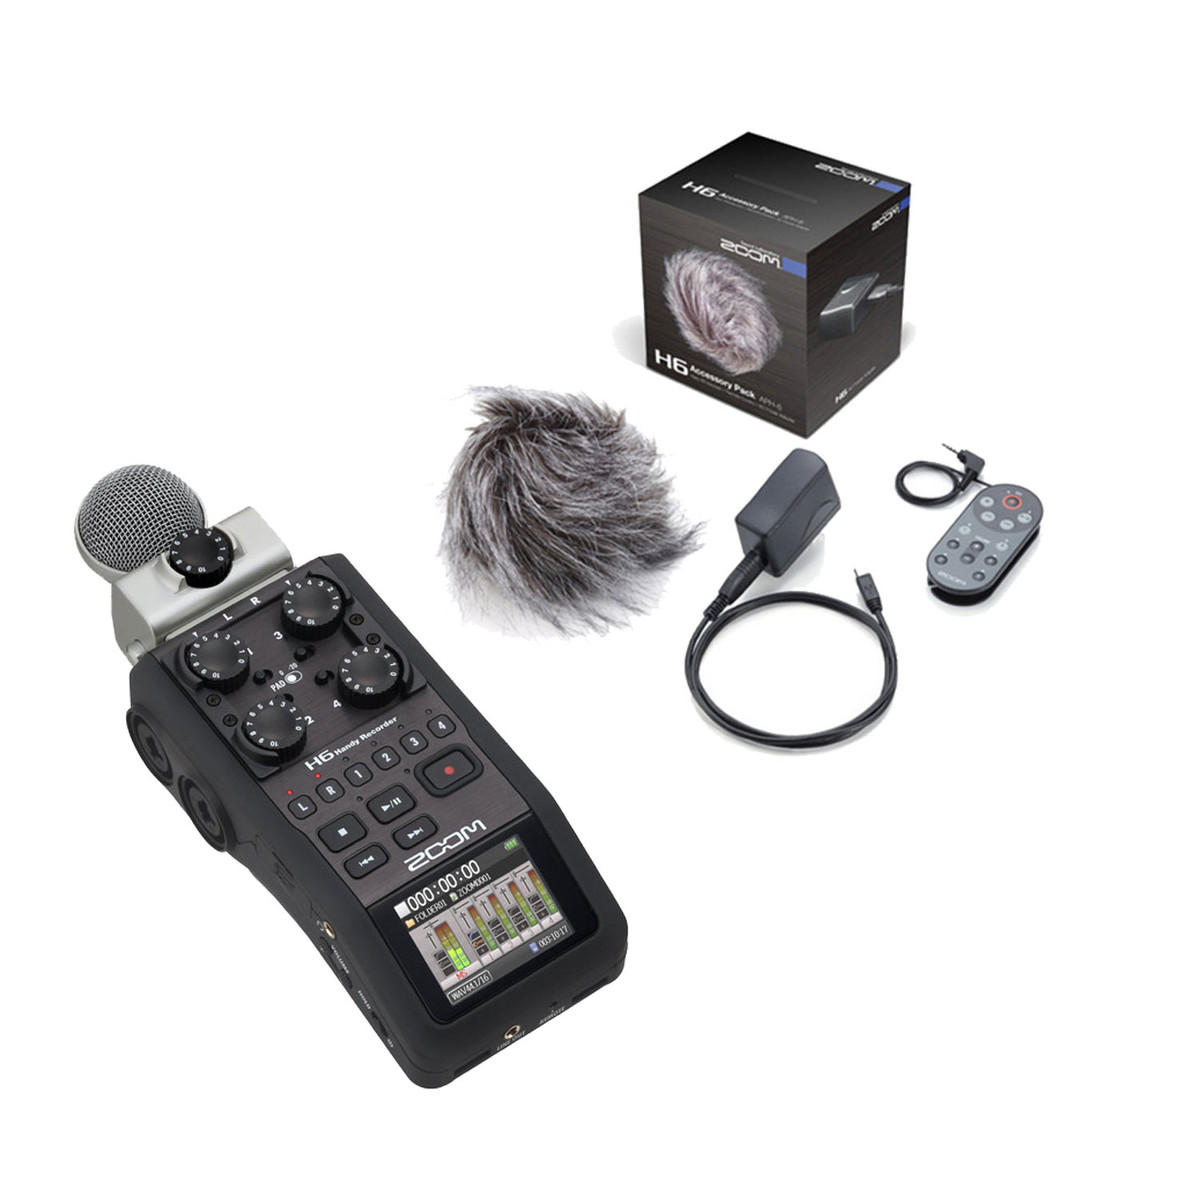 Image of Zoom H6 Handheld Recorder with Accessory Pack